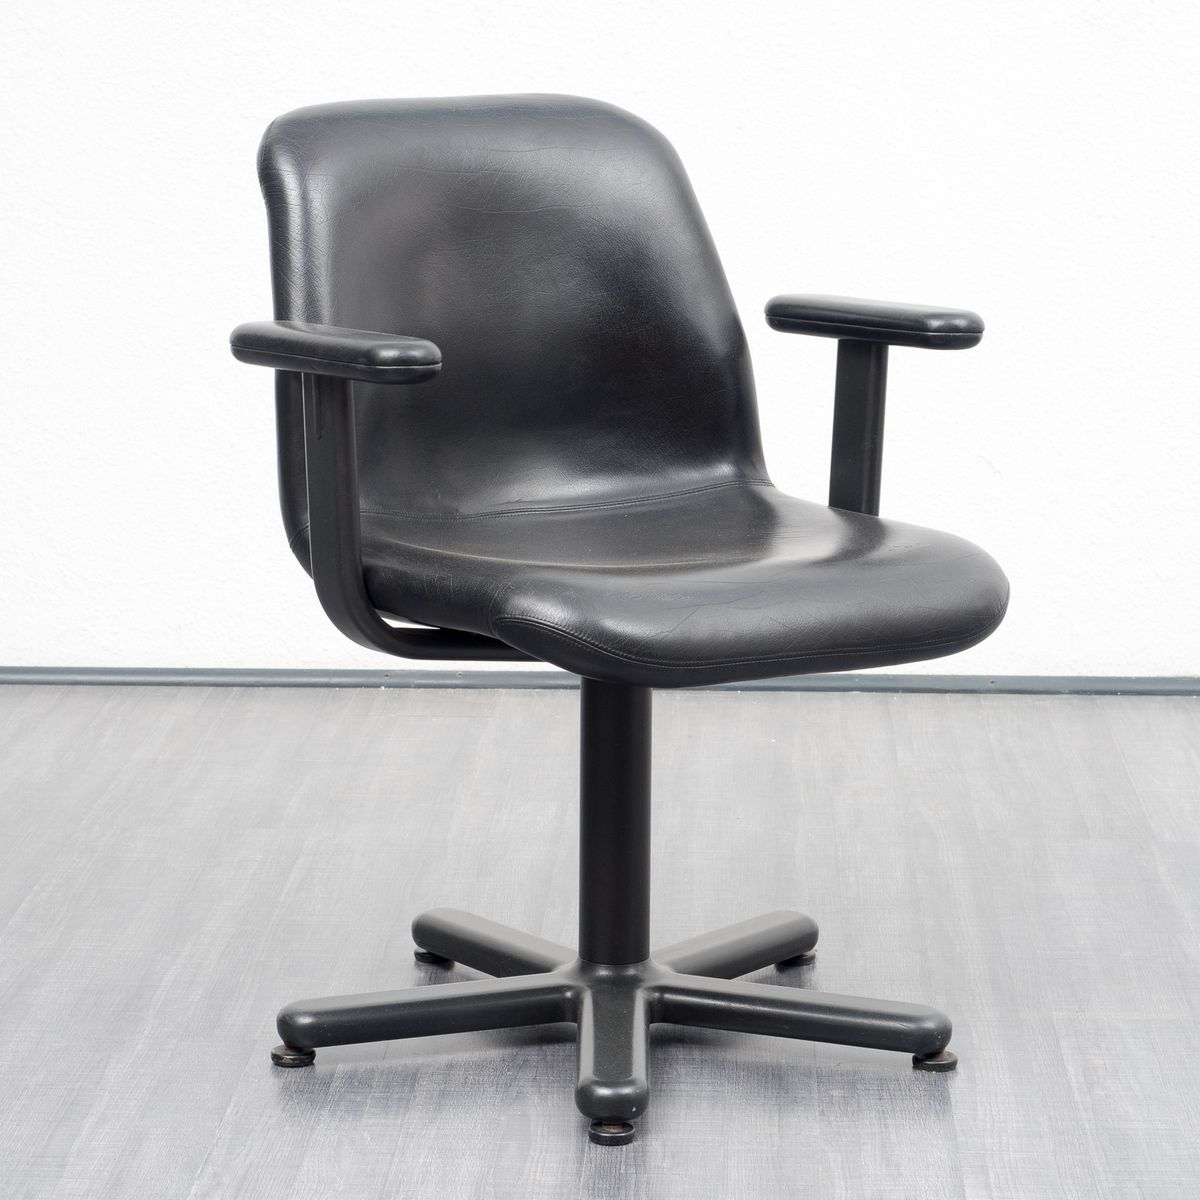 Mid Century Leather Desk Chair From Knoll International, 1950s